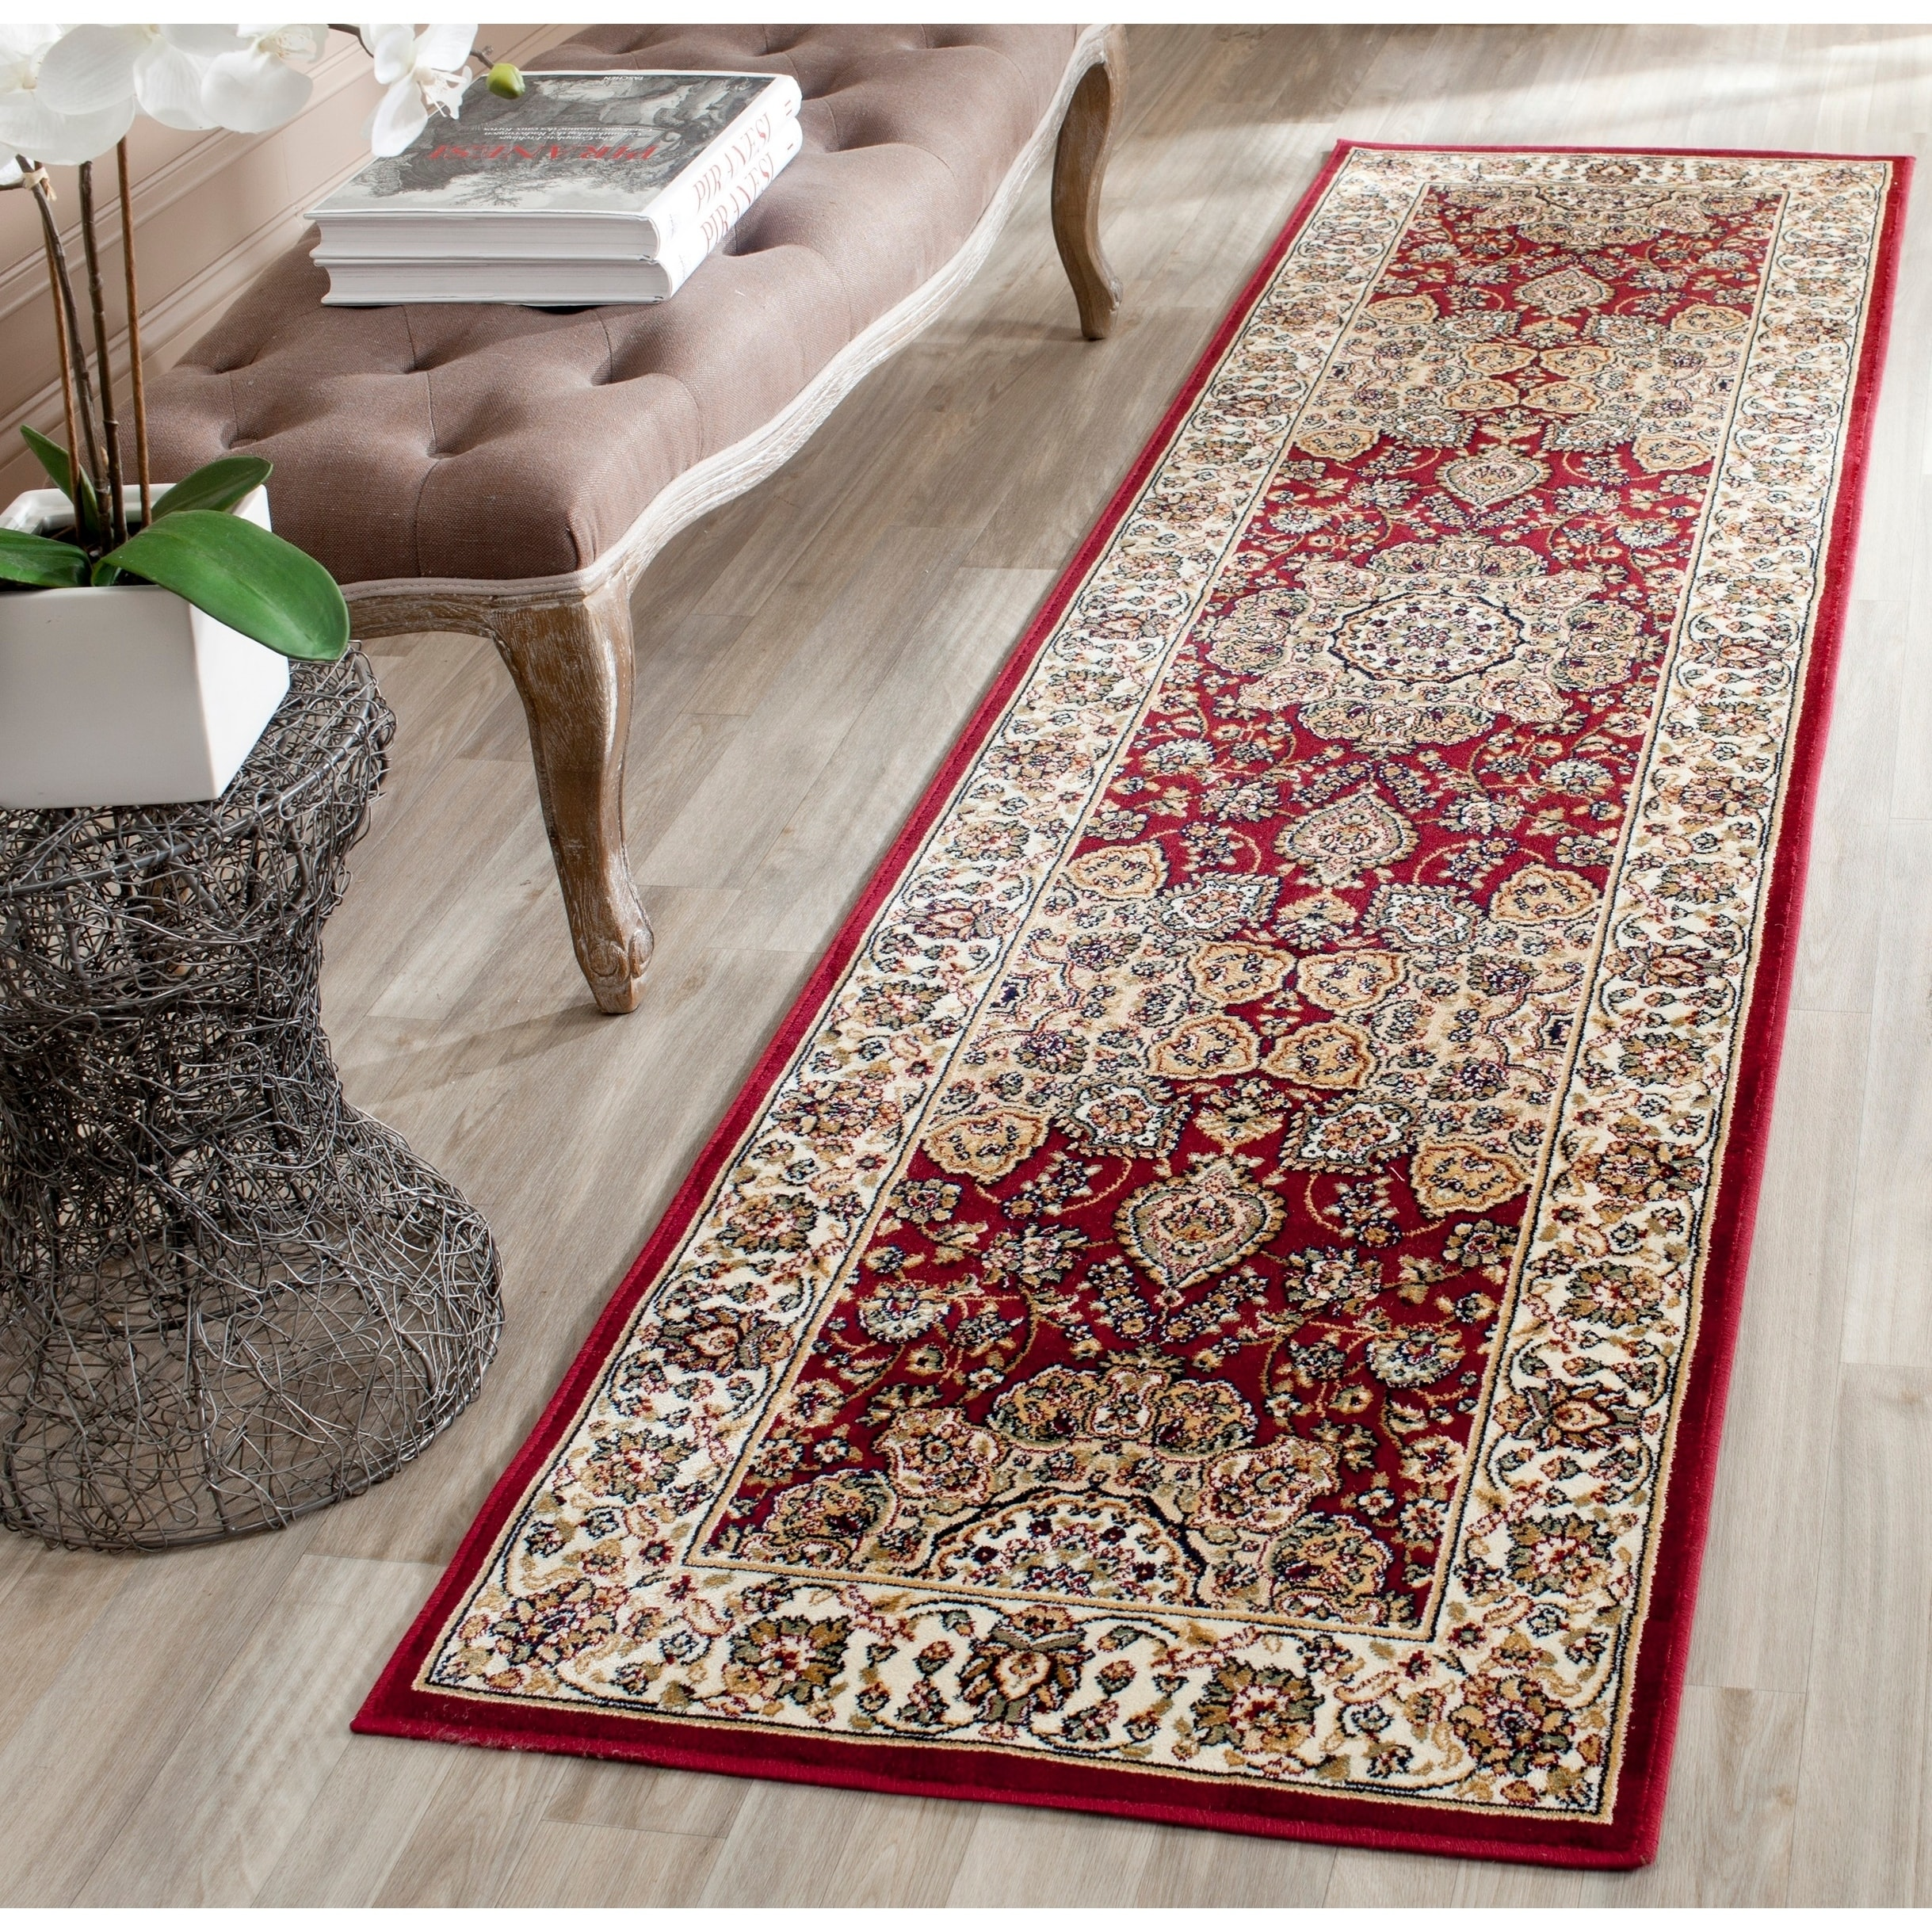 Safavieh Persian Garden Red/ Ivory Viscose Rug (2'2 x 8')...